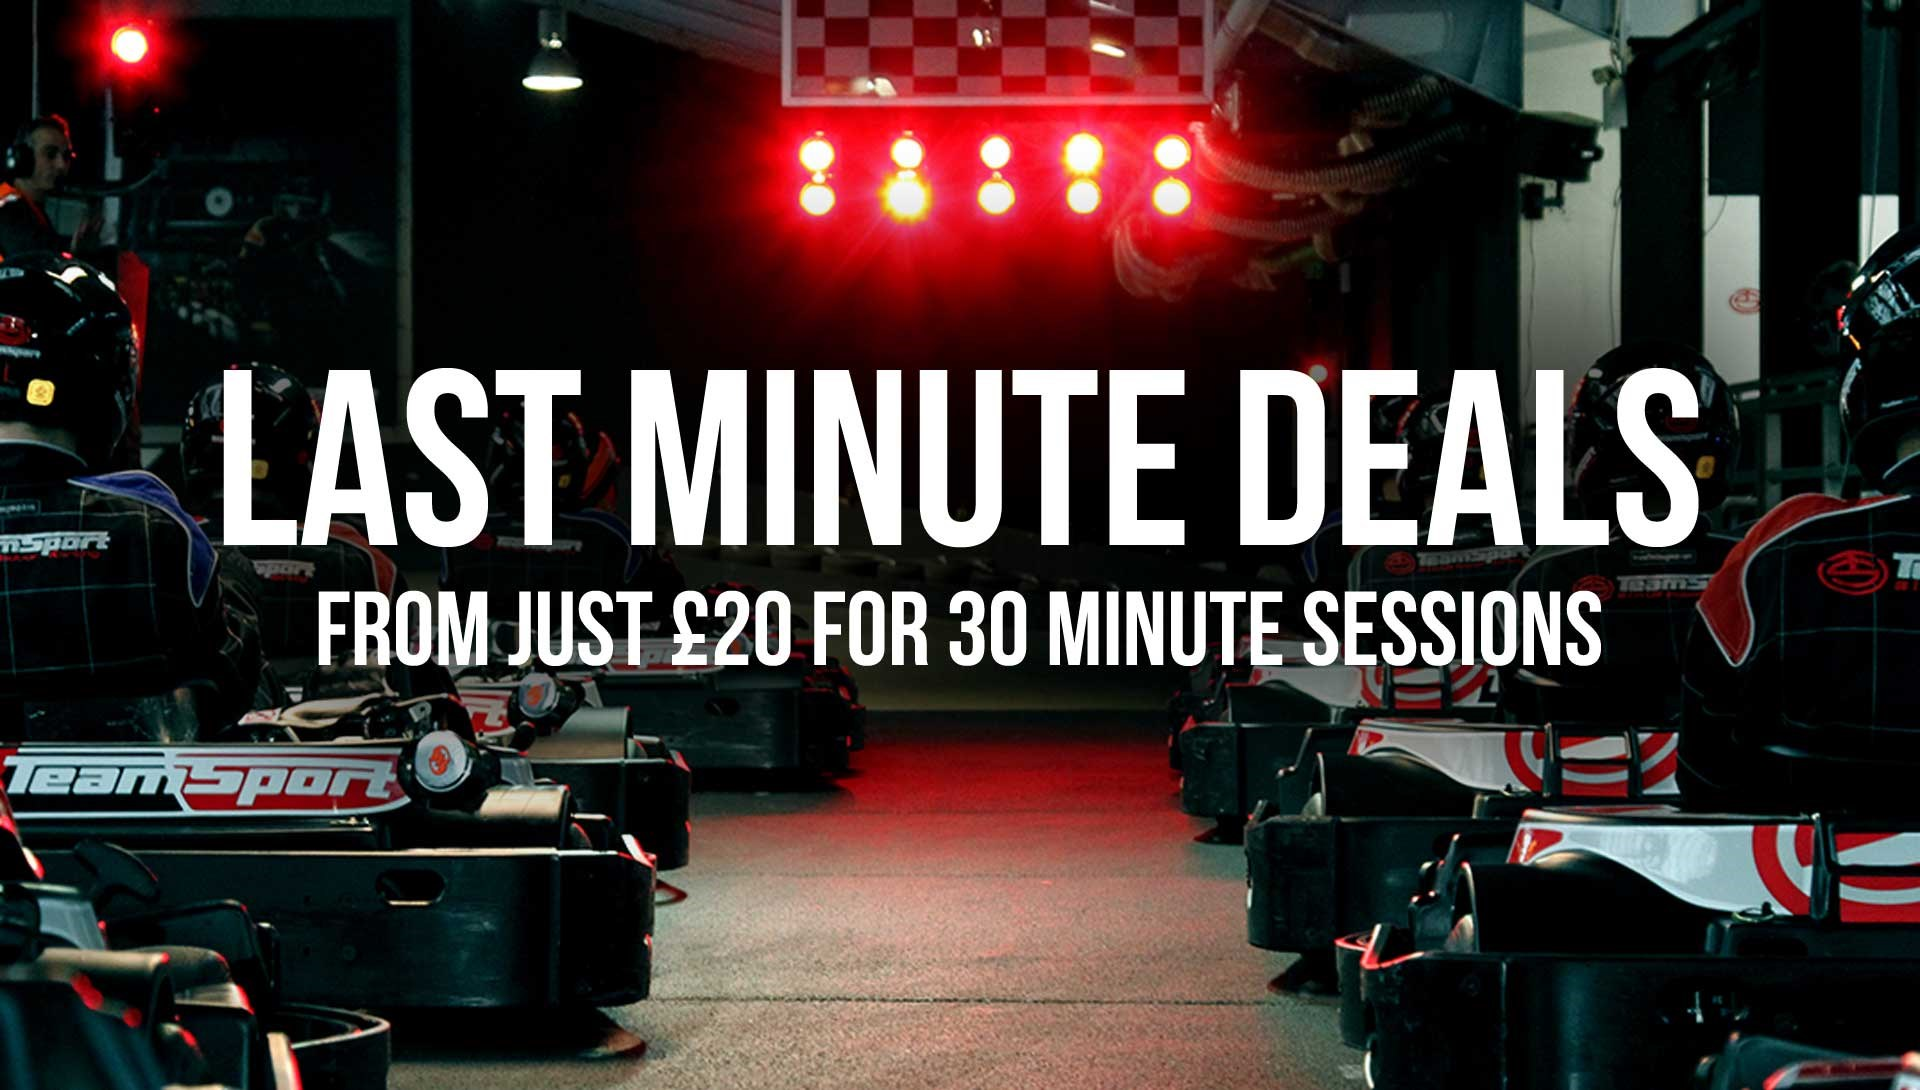 GO KARTING OFFERS - Last Minute Deals from £20